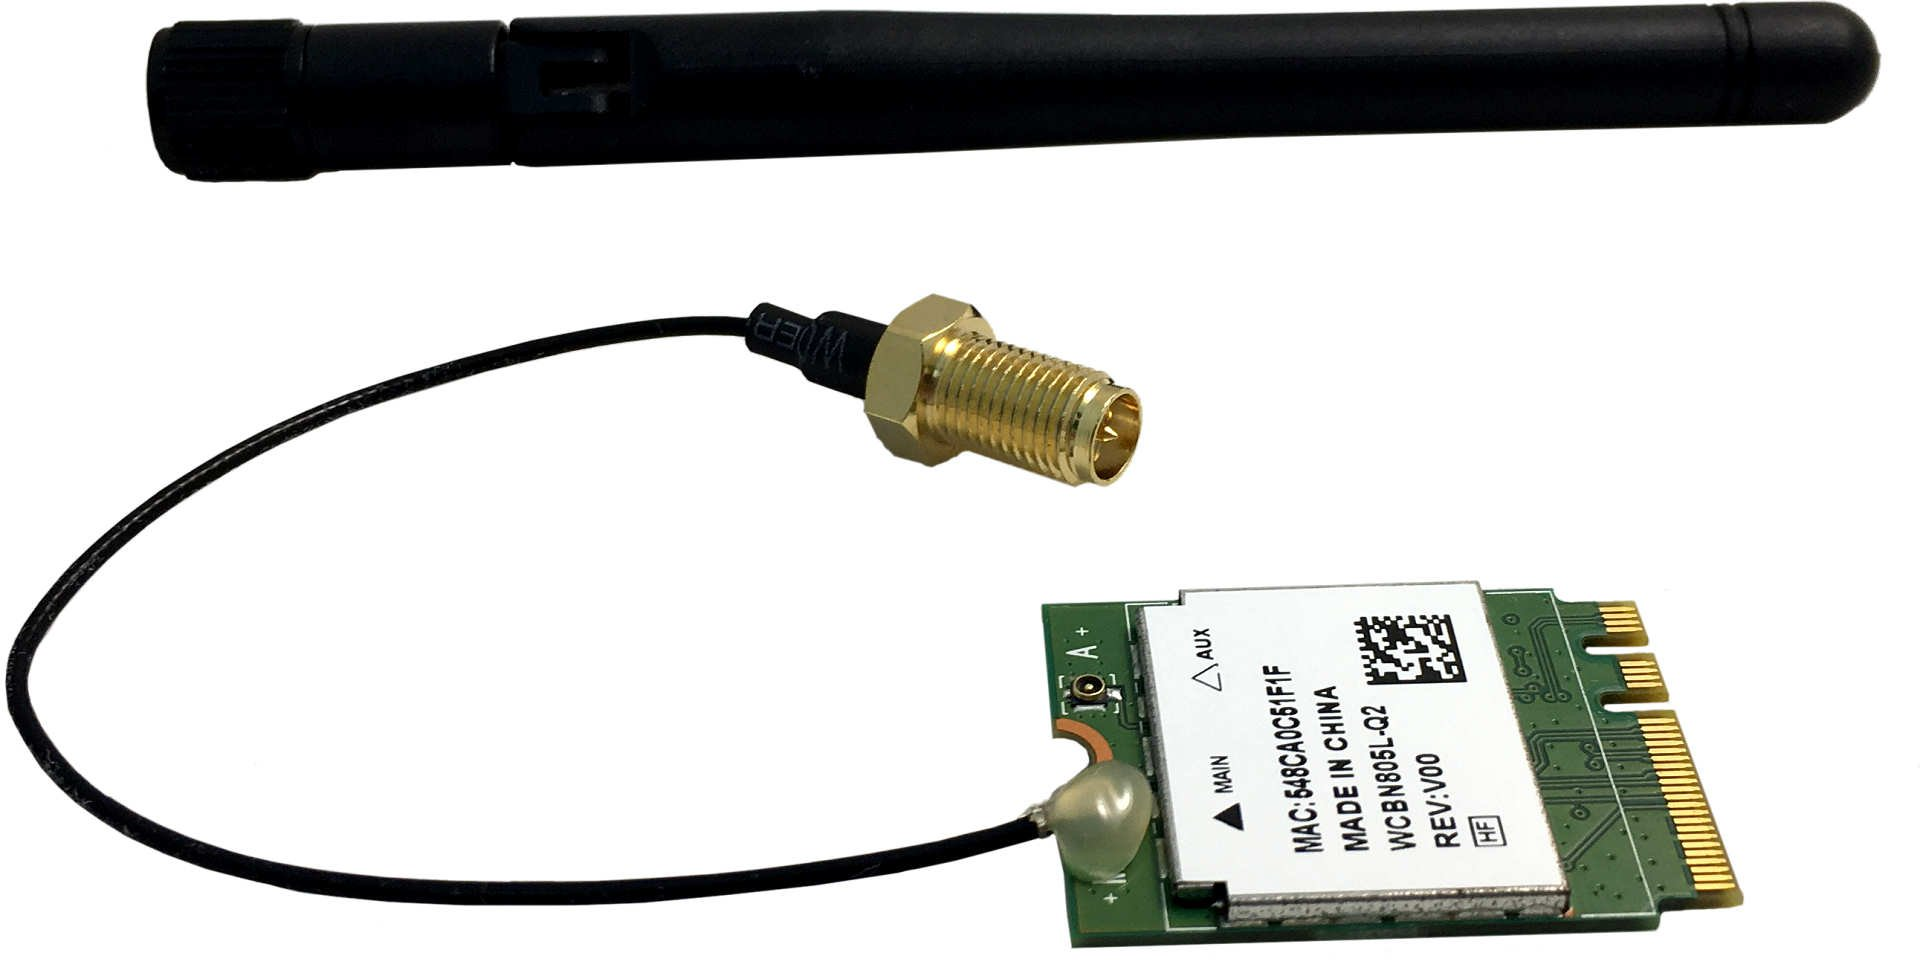 Wireless Module for Series 3 Compatible with all Series 3 by Brightsign